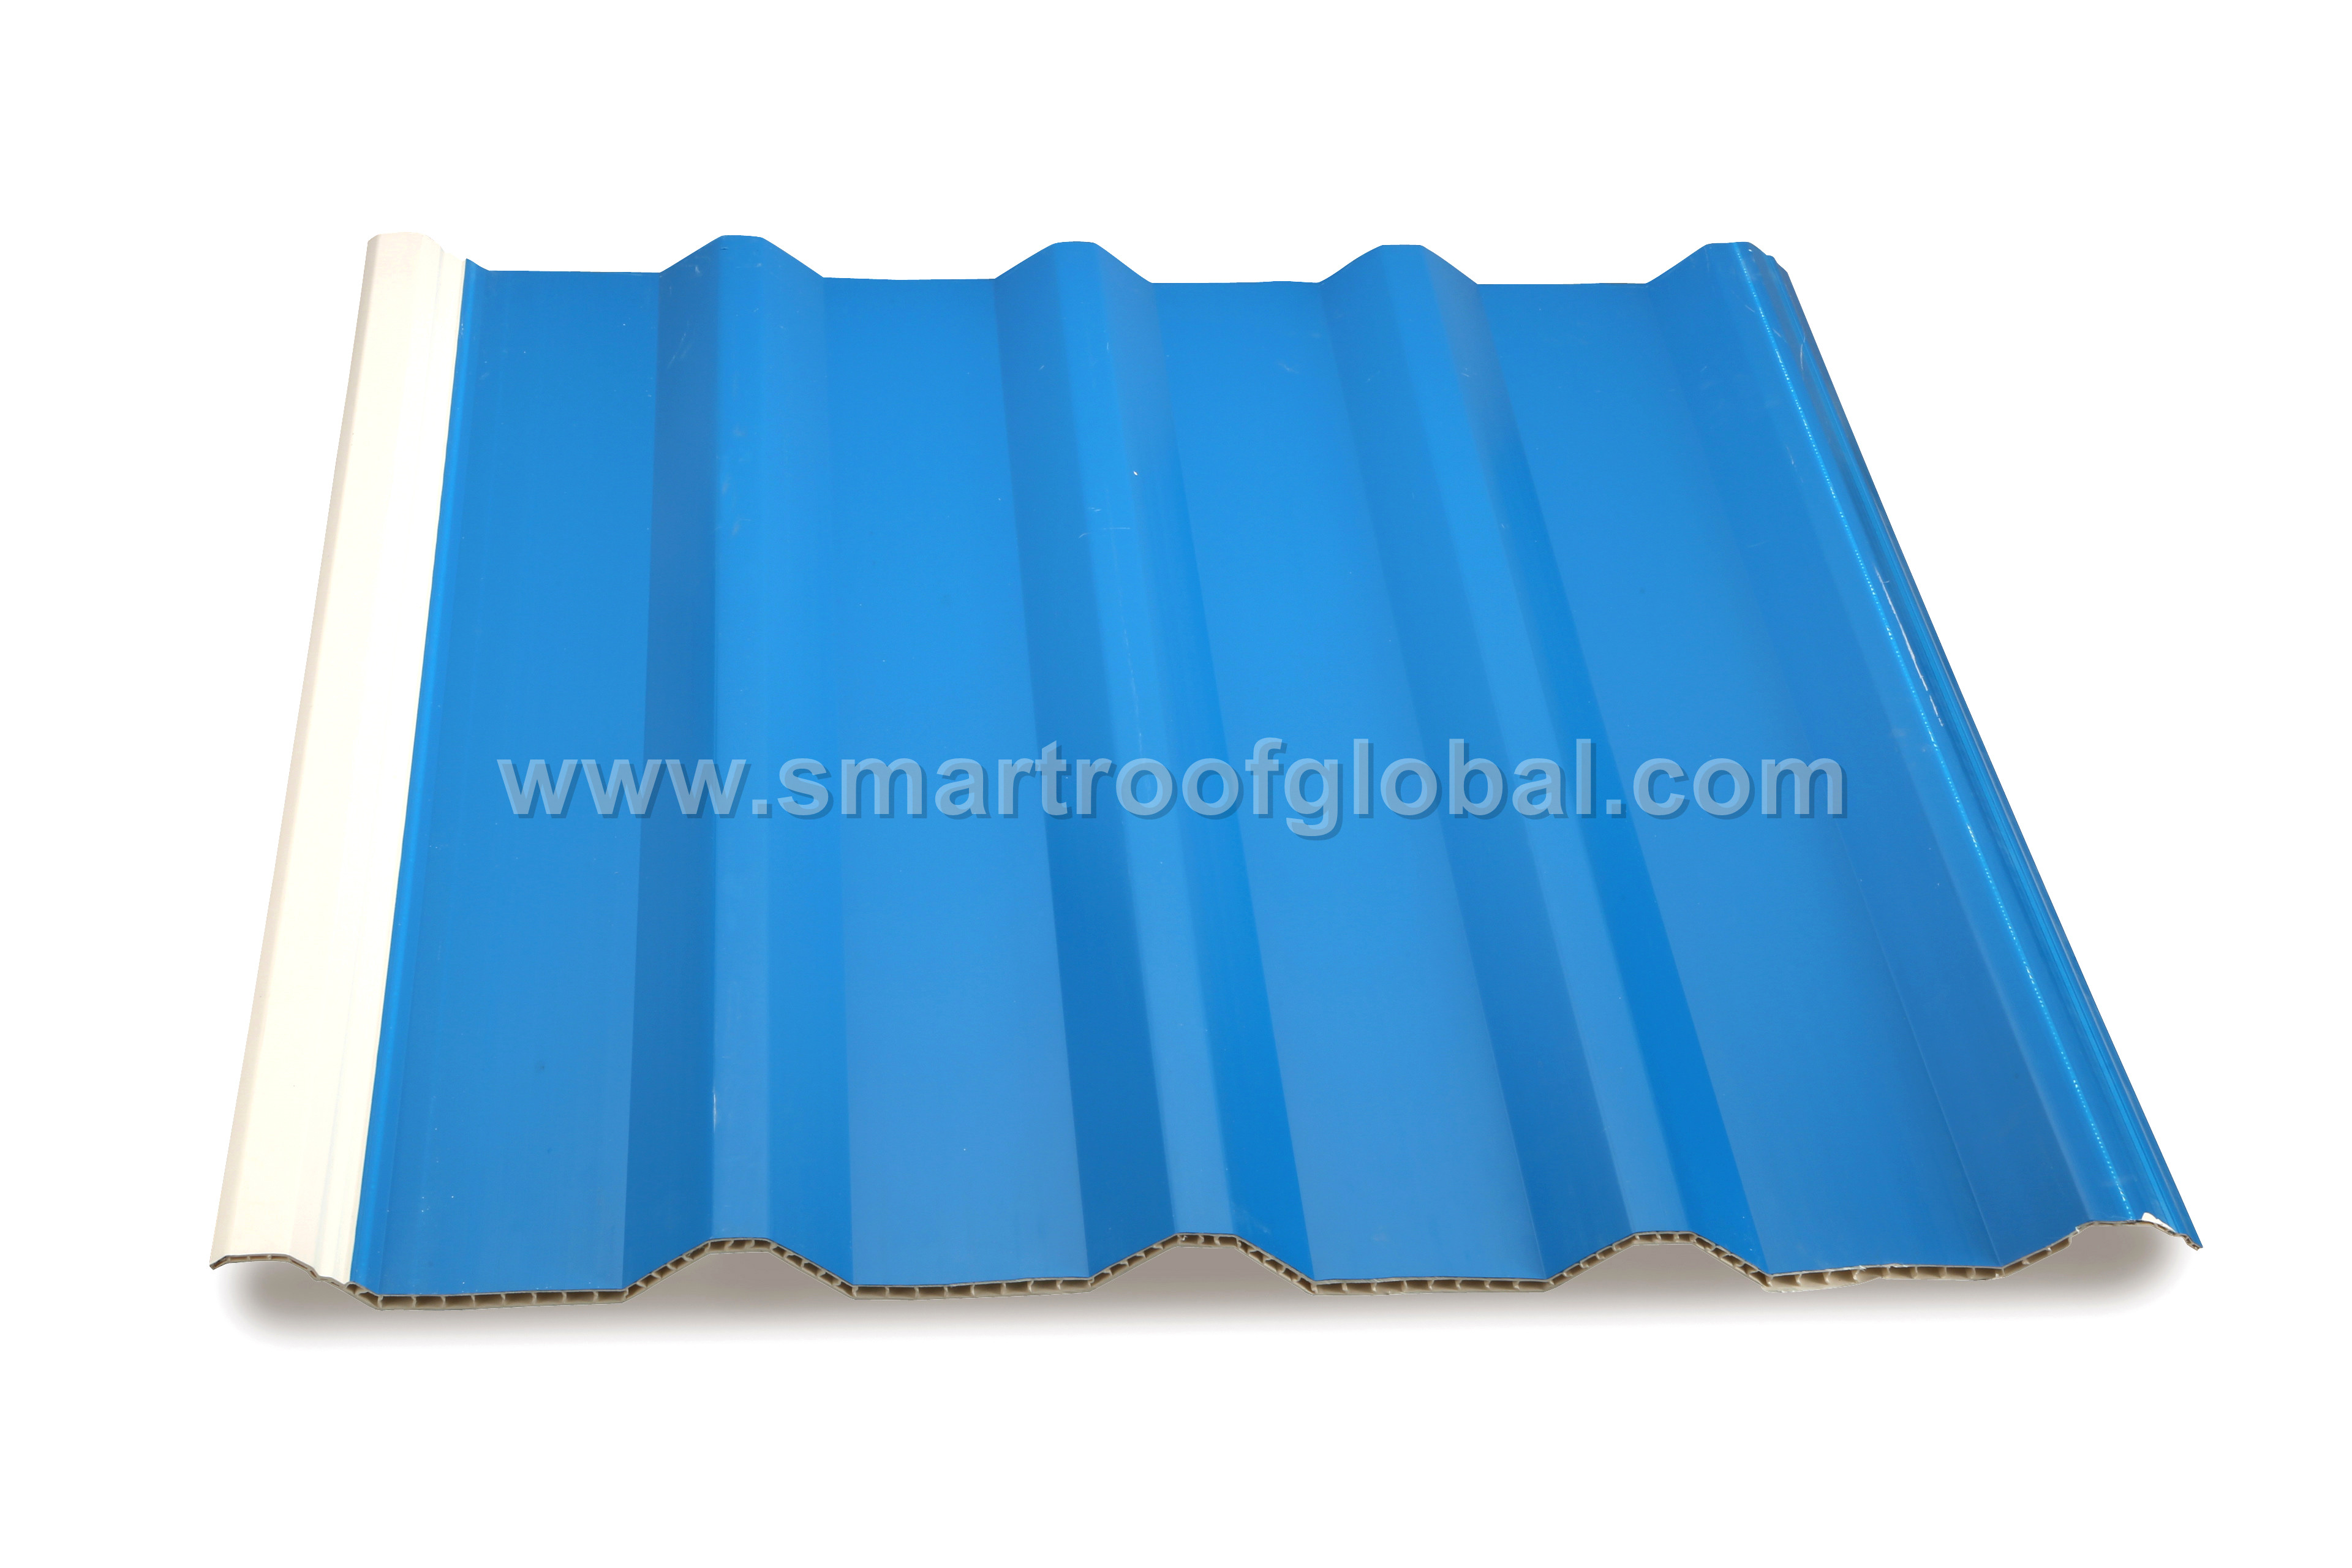 PVC Hollow Roofing Featured Image